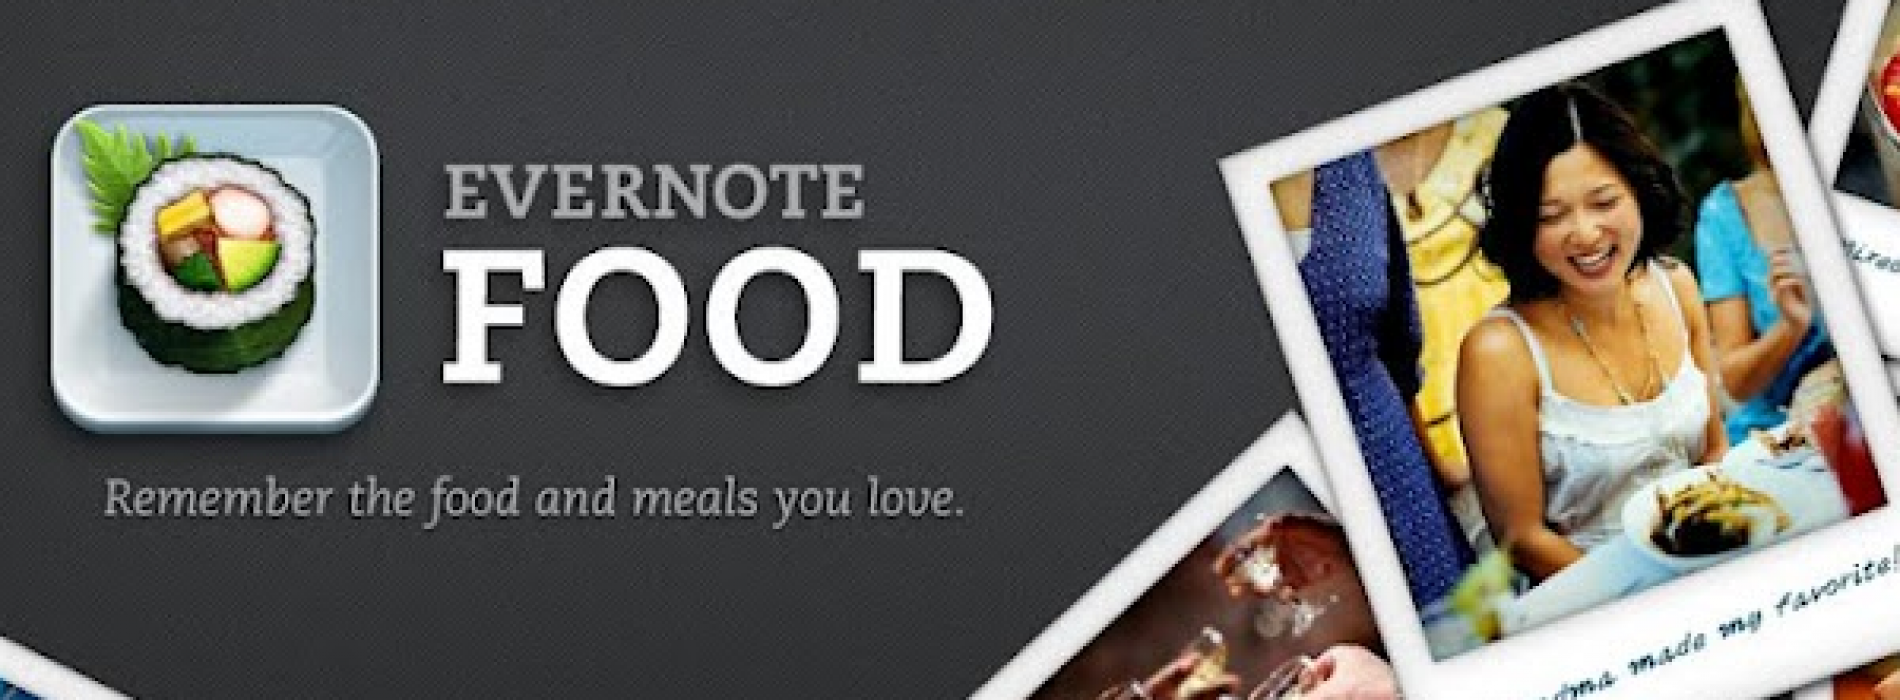 Evernote Food comes out of the oven and it's delicious